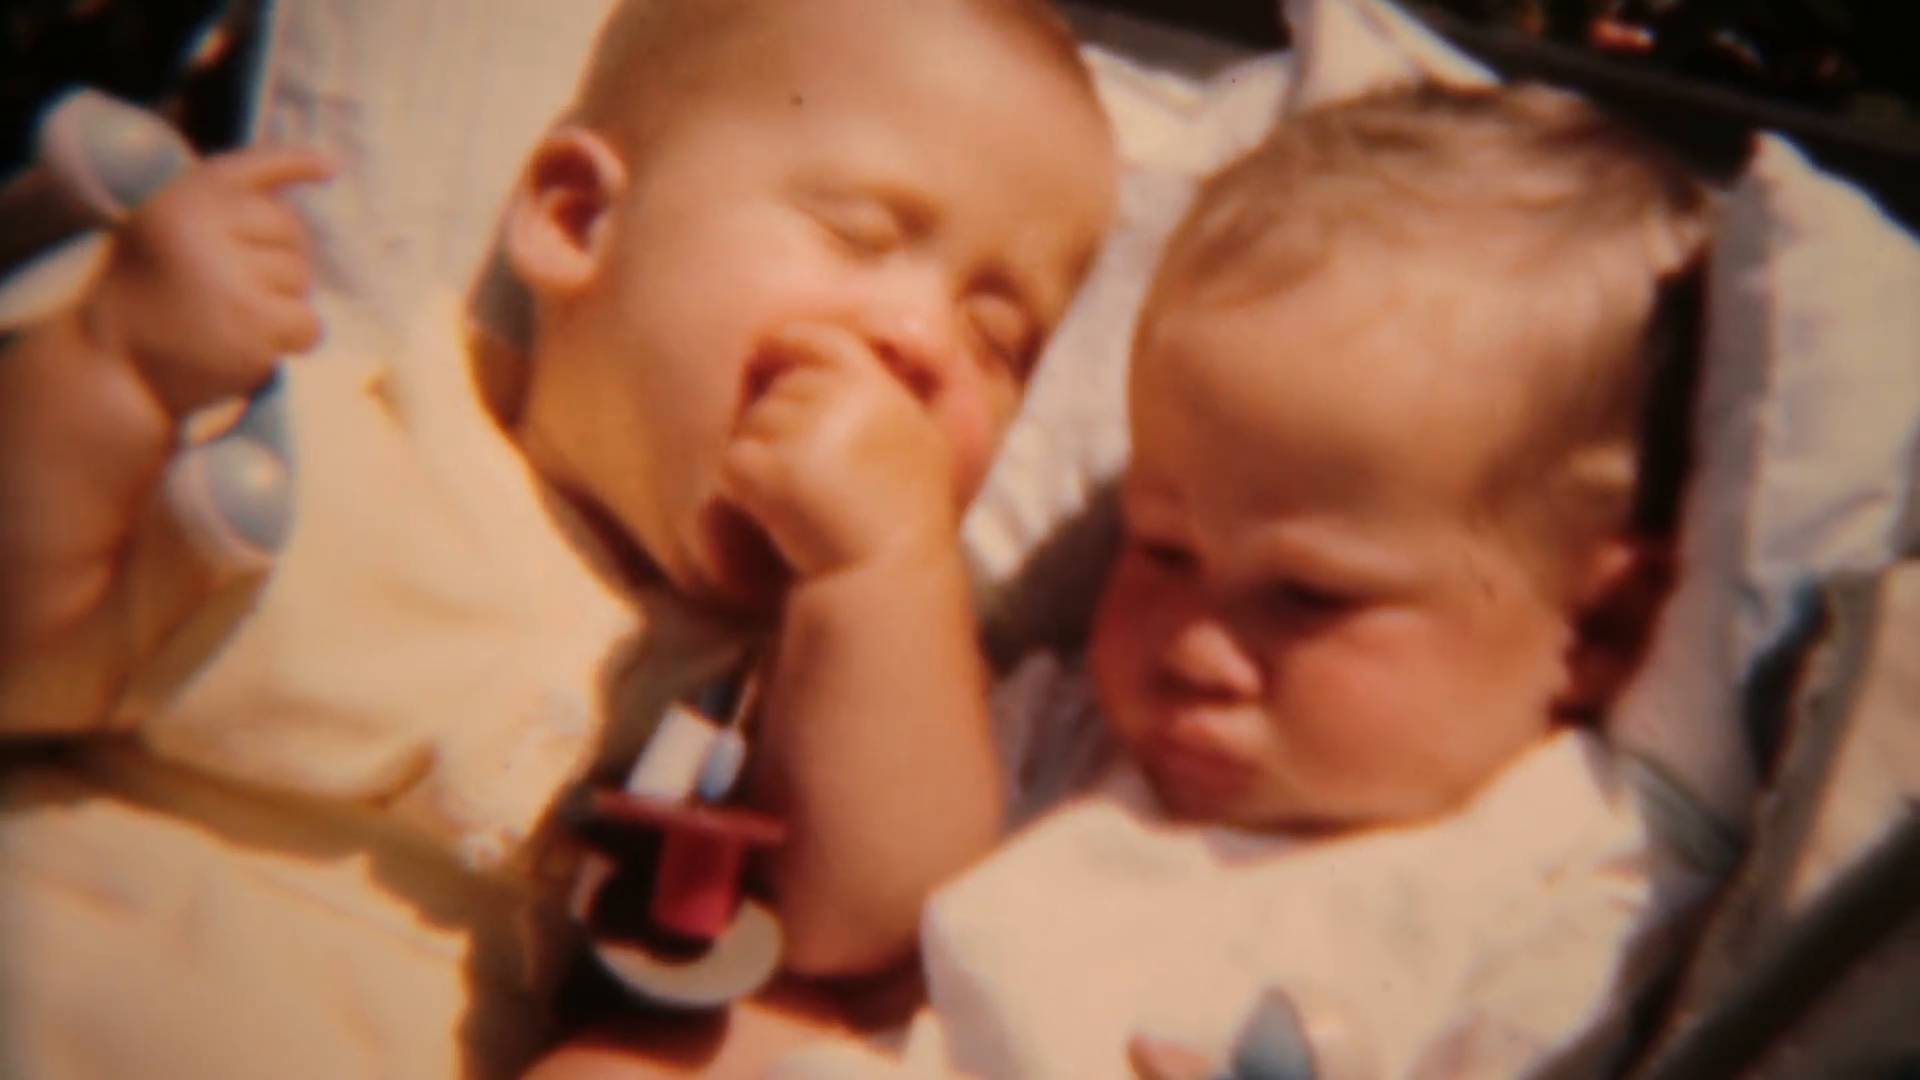 Twin babies playing with small toys Vintage film 0105 Stock Video Footage -  VideoBlocks